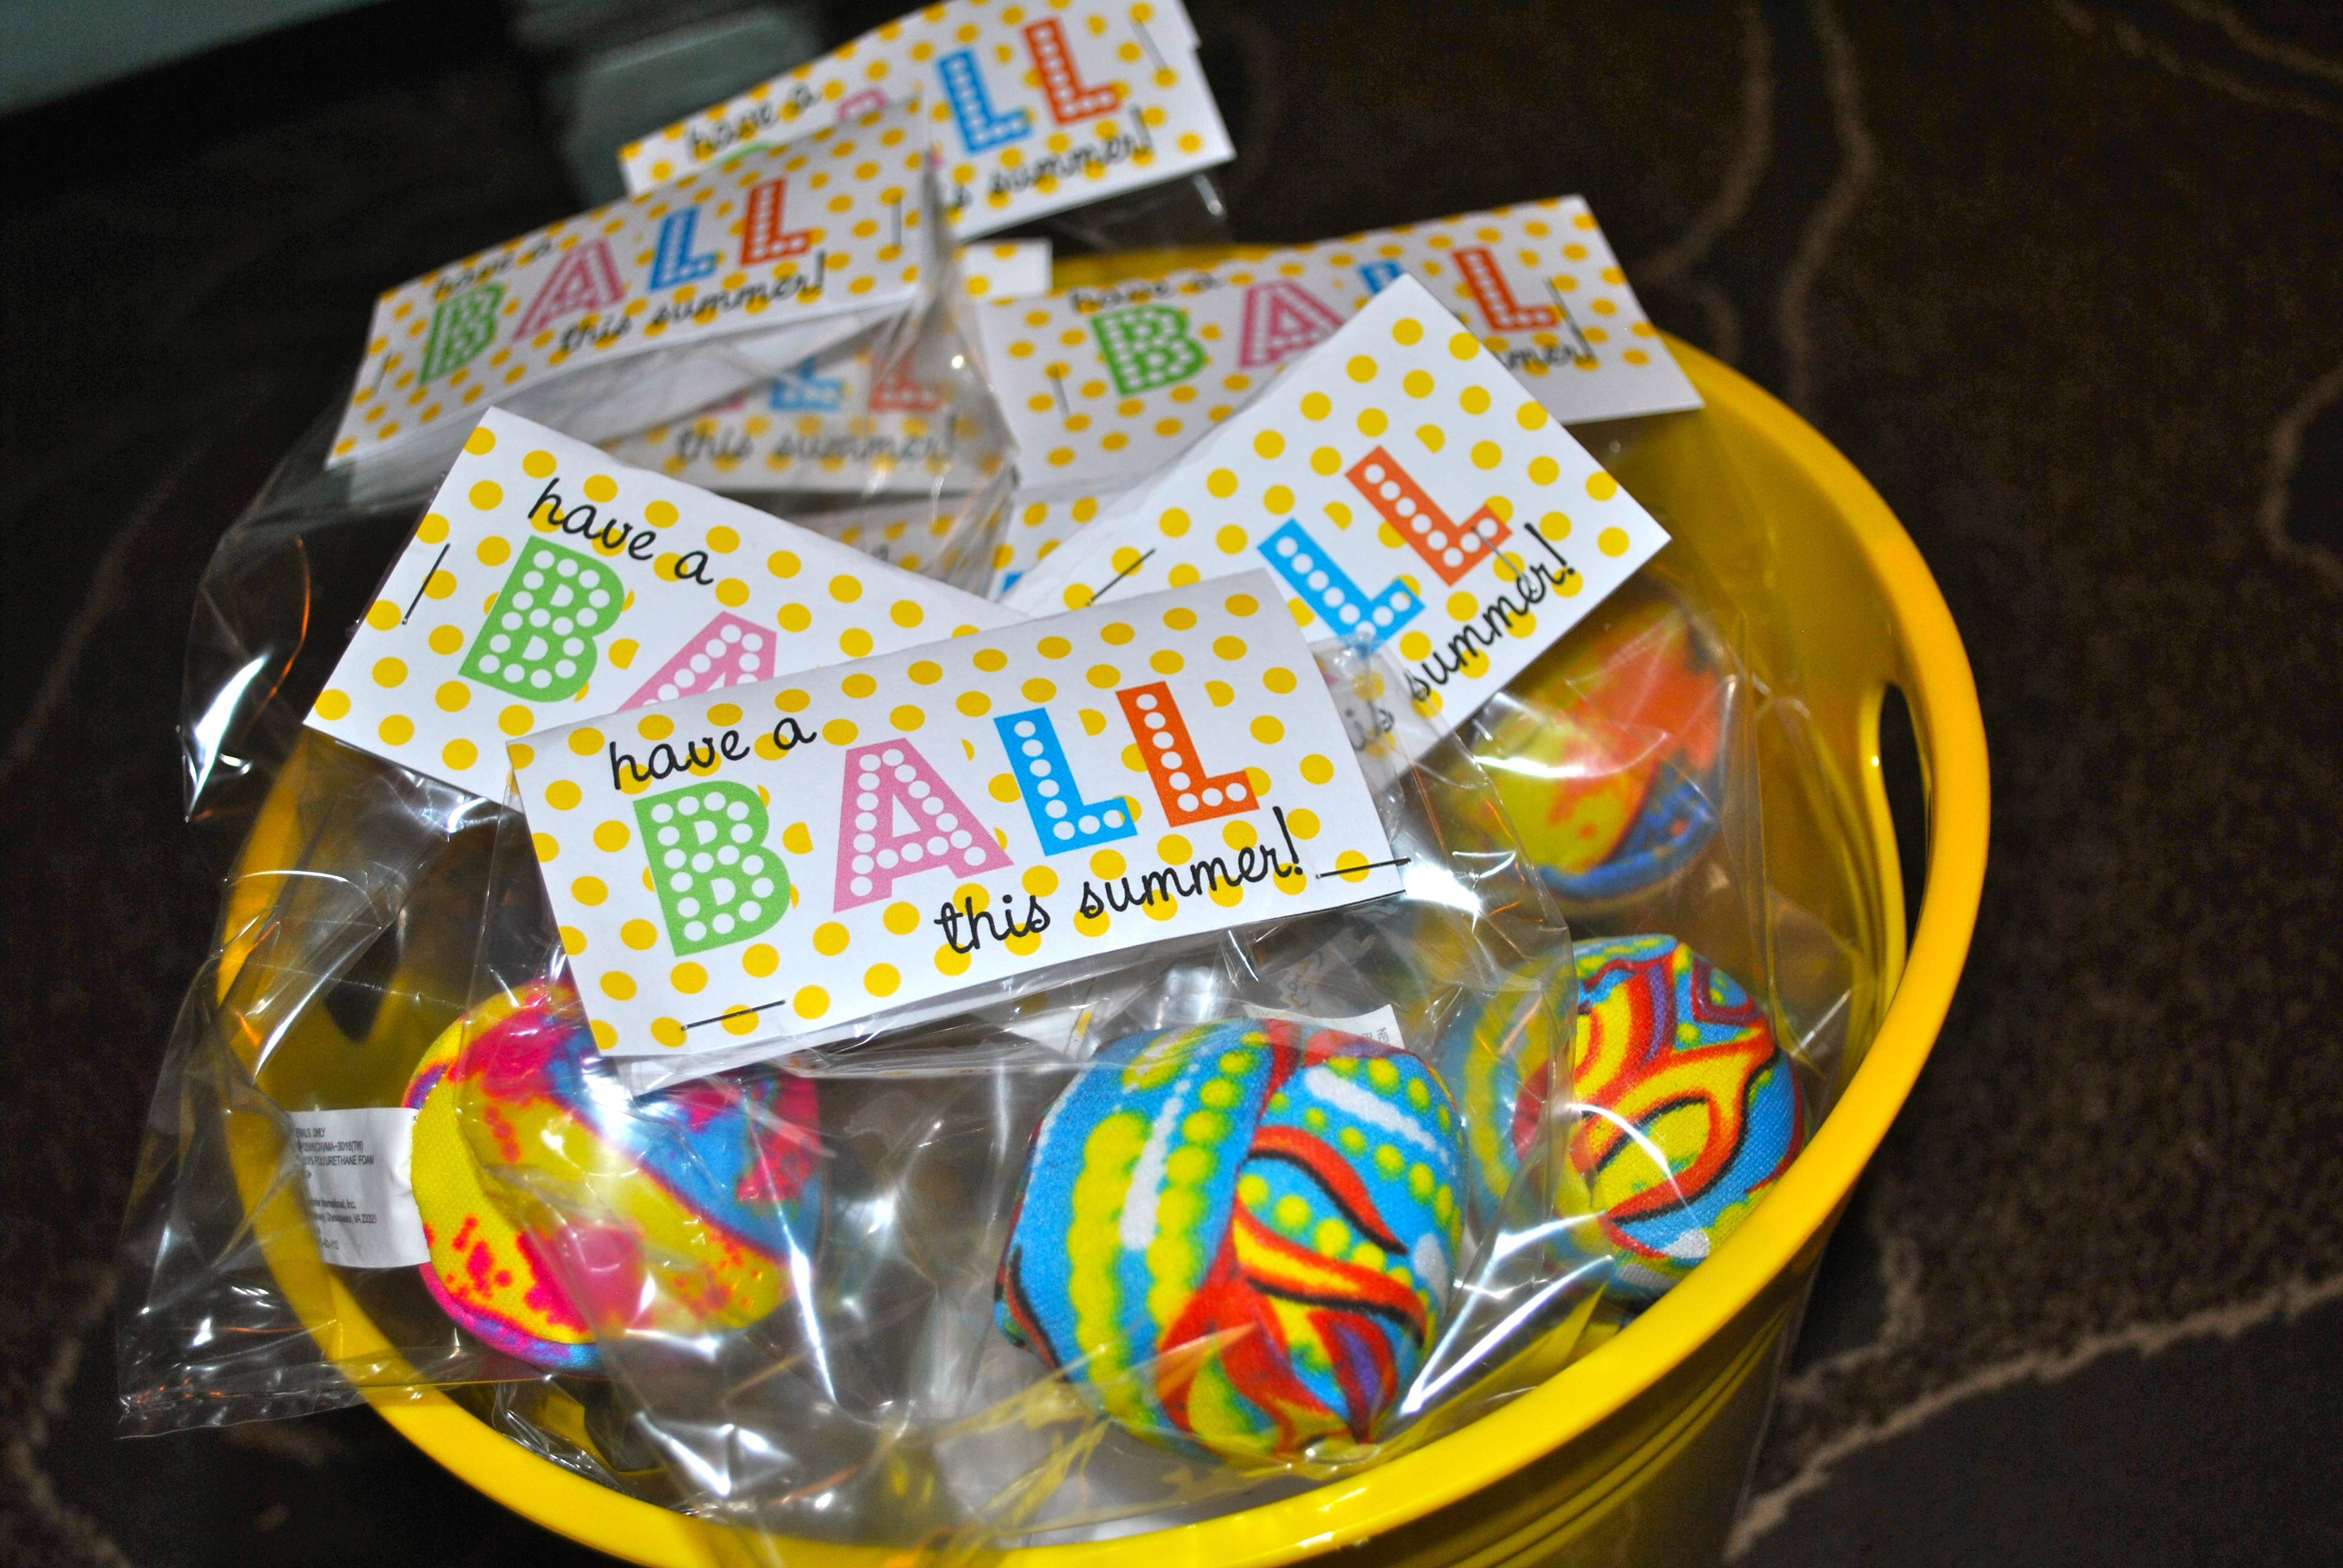 It's just a picture of Have a Ball This Summer Printable for lego